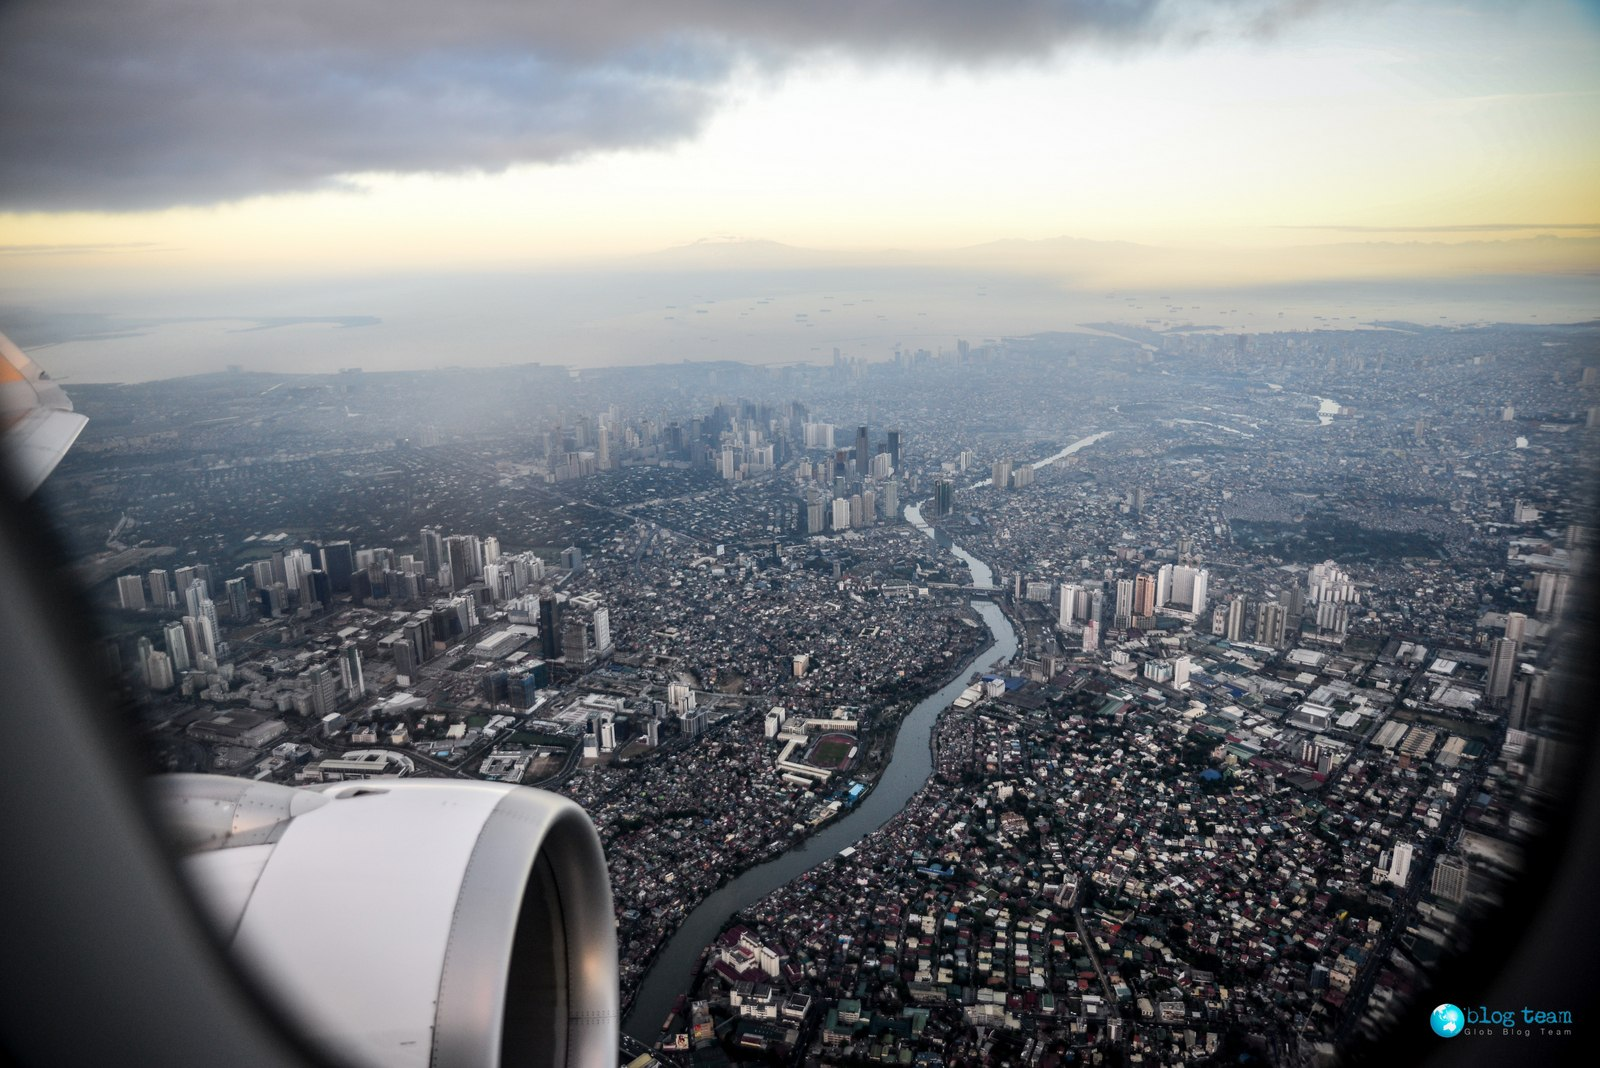 Manila Widok z lotu ptaka / Manila - bird's eye view